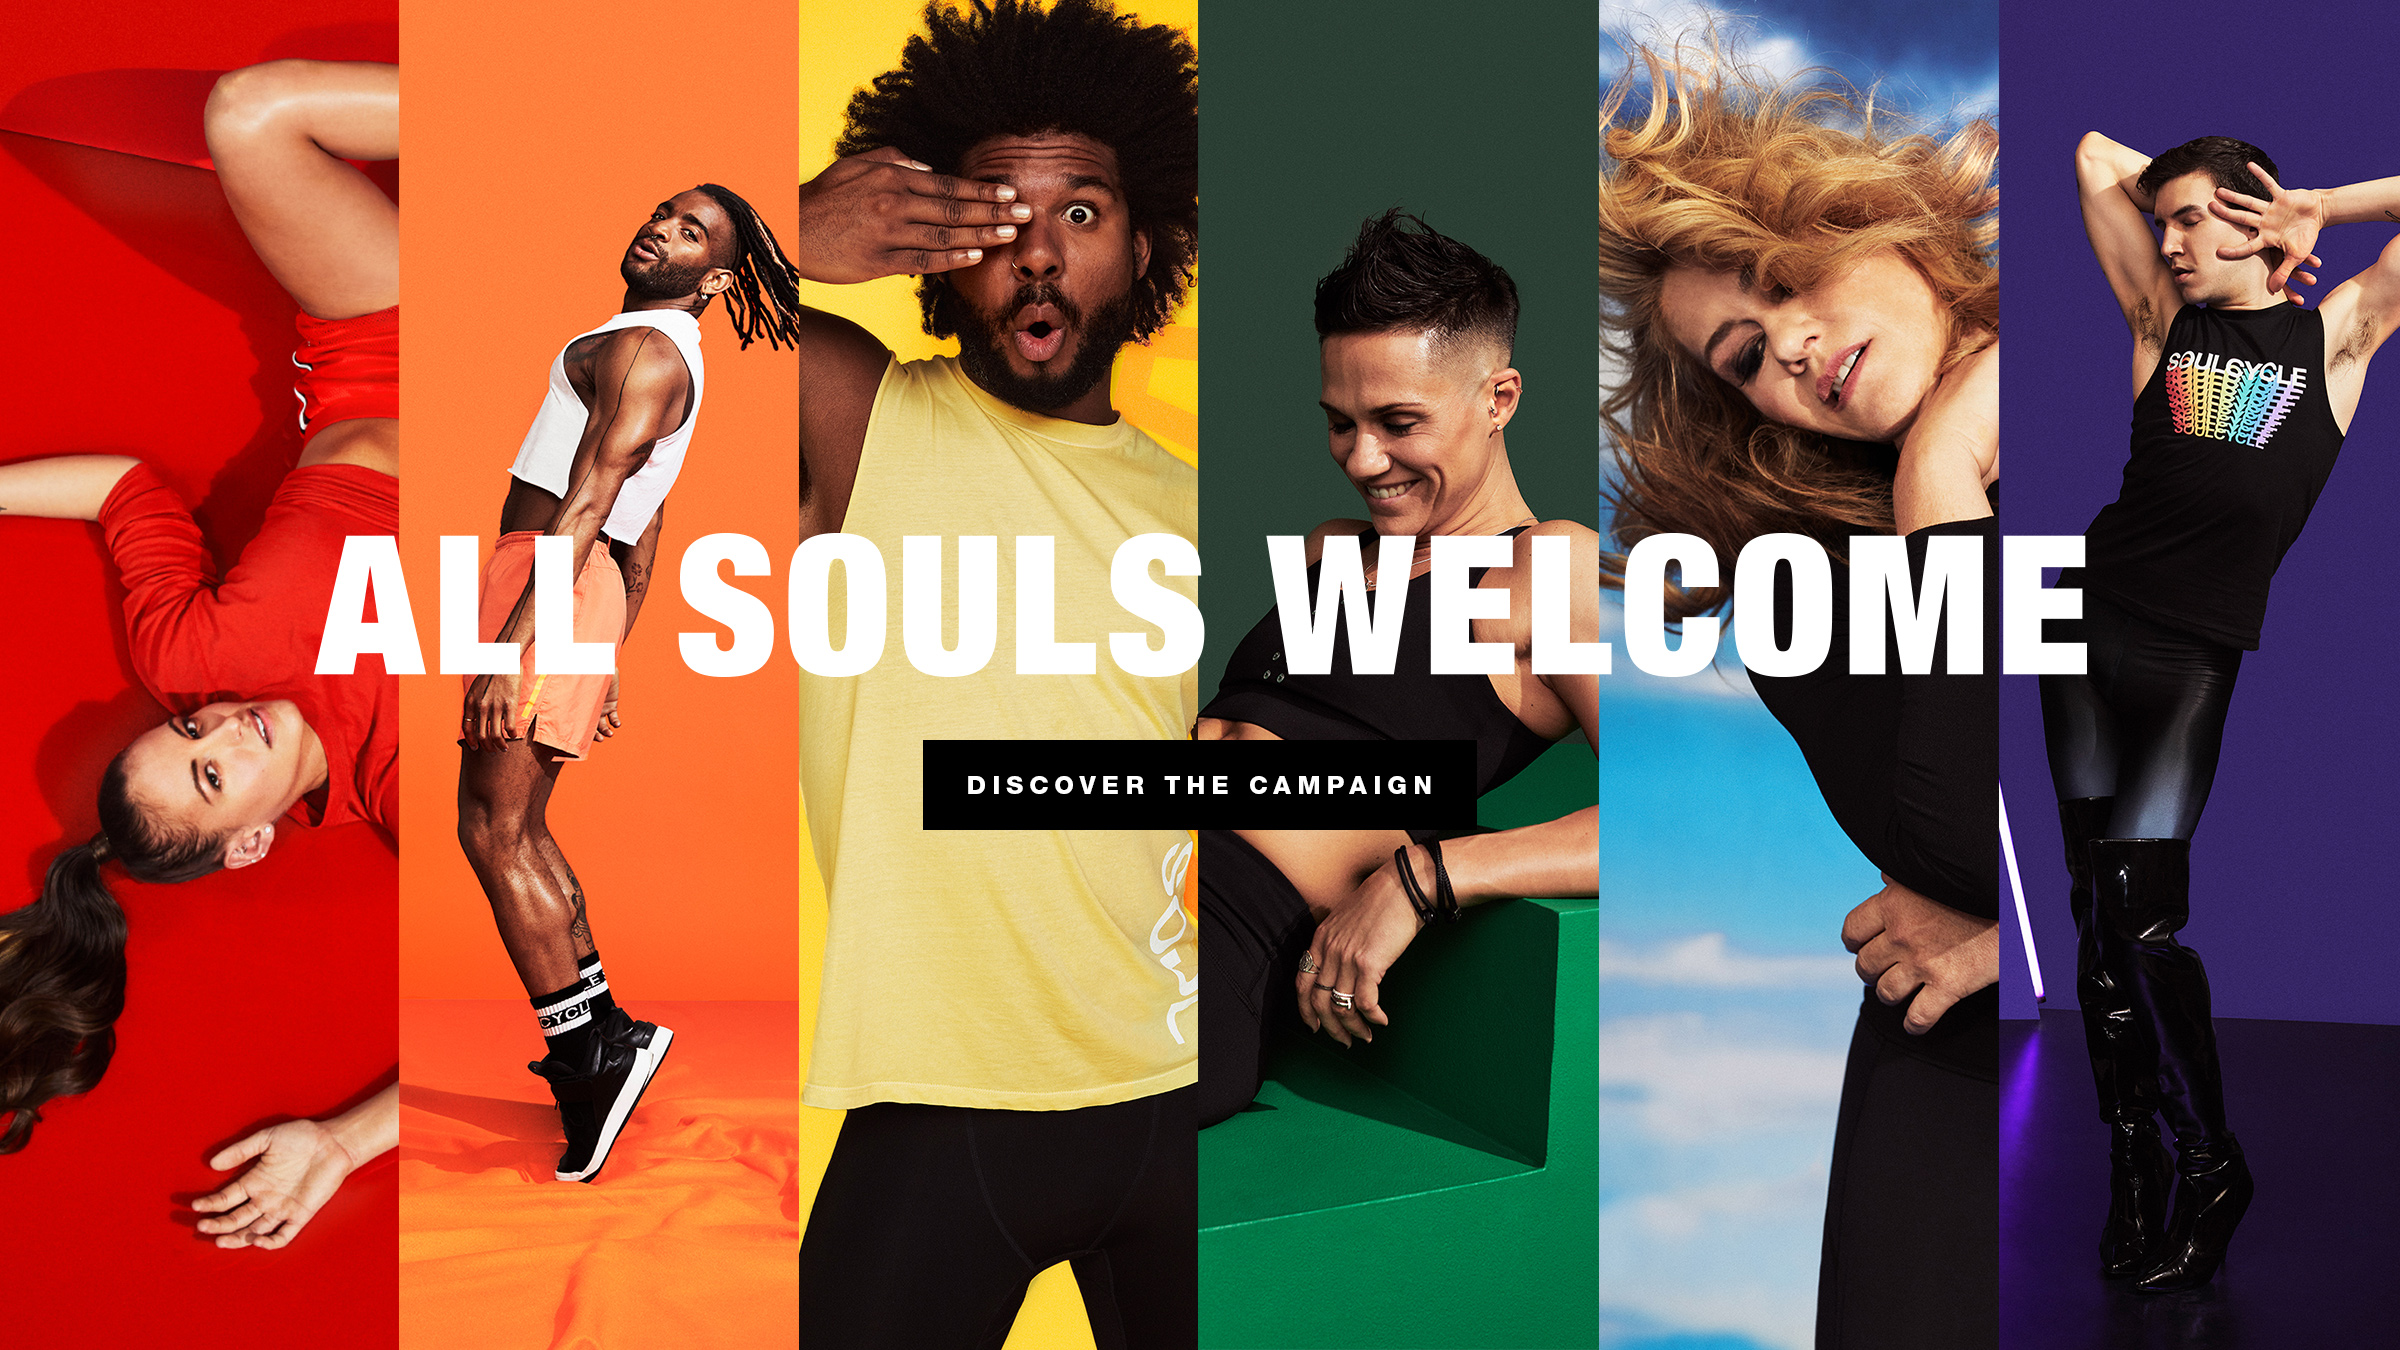 All Souls Welcome - Discover the Campaign